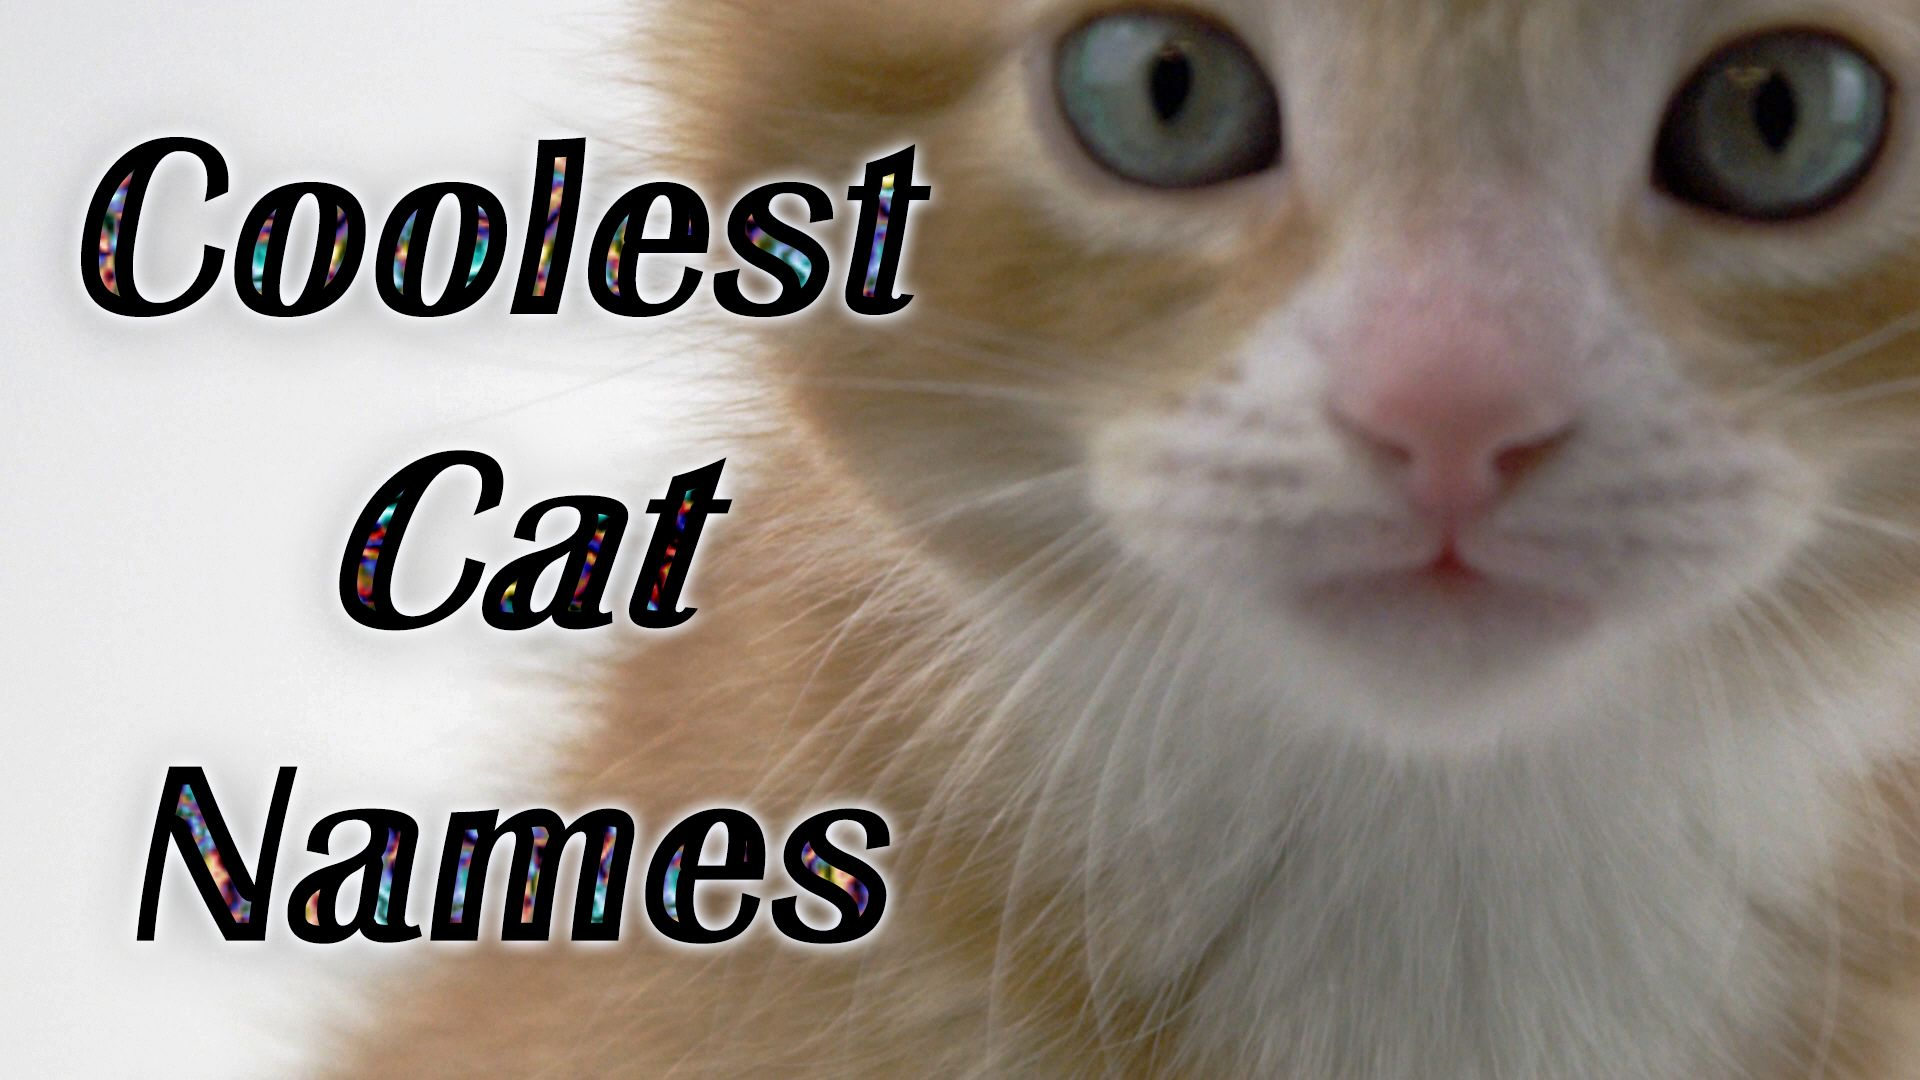 VOTE FOR YOUR FAVORITE CAT NAME OR JUST WATCH THE CUTE